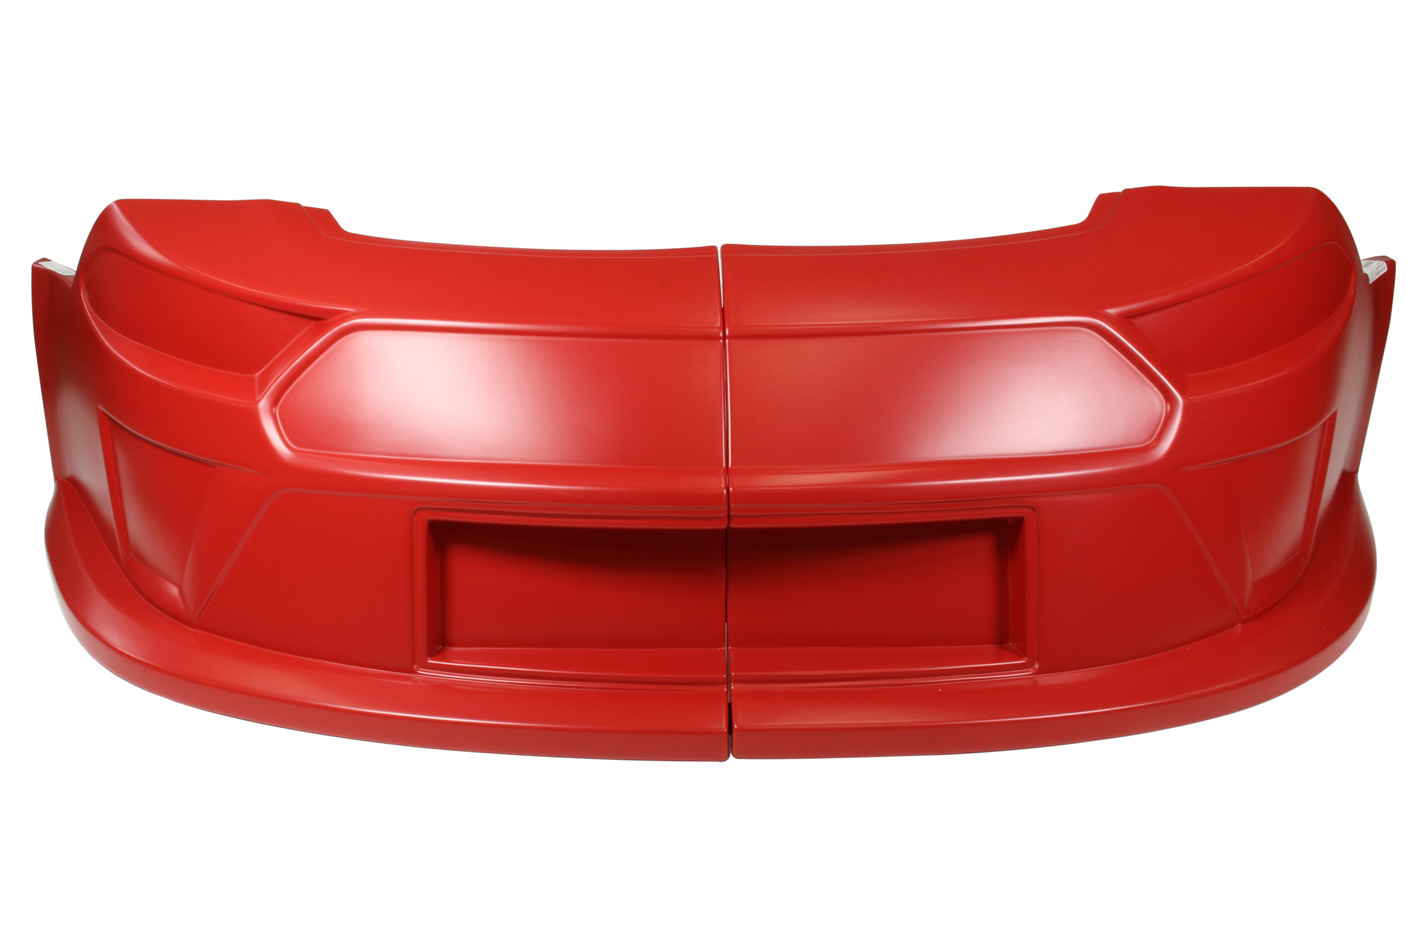 FIVESTAR 2019 LM Mustang Nose Plastic Red P/N -11322-41051-R